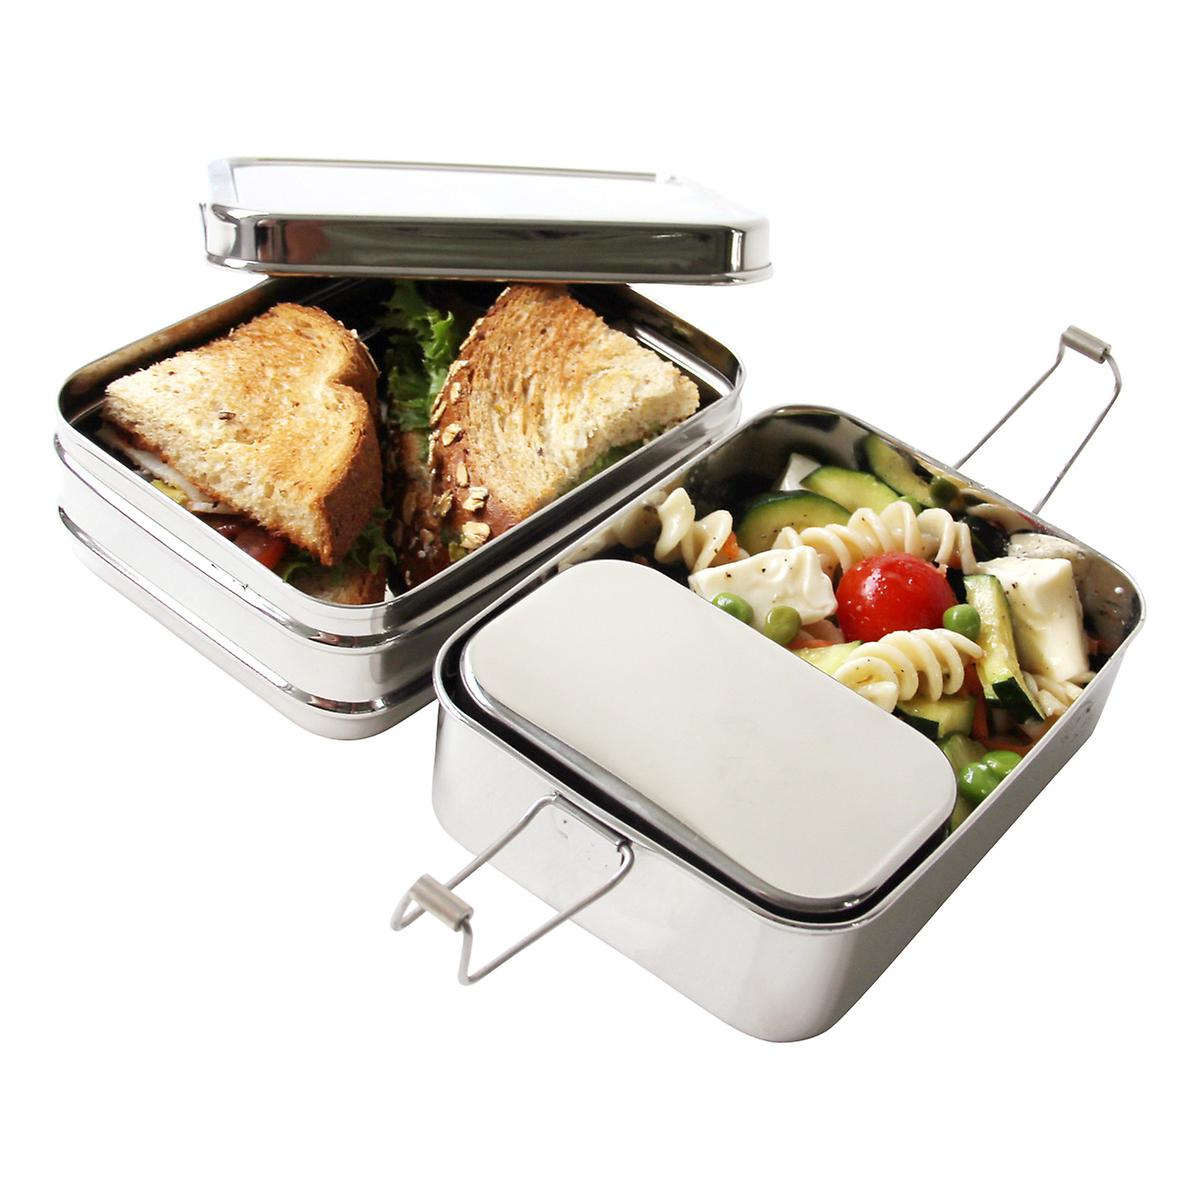 1a92d959597 ECOlunchbox Stainless Steel Rectangular 3-in-1 Lunch Box